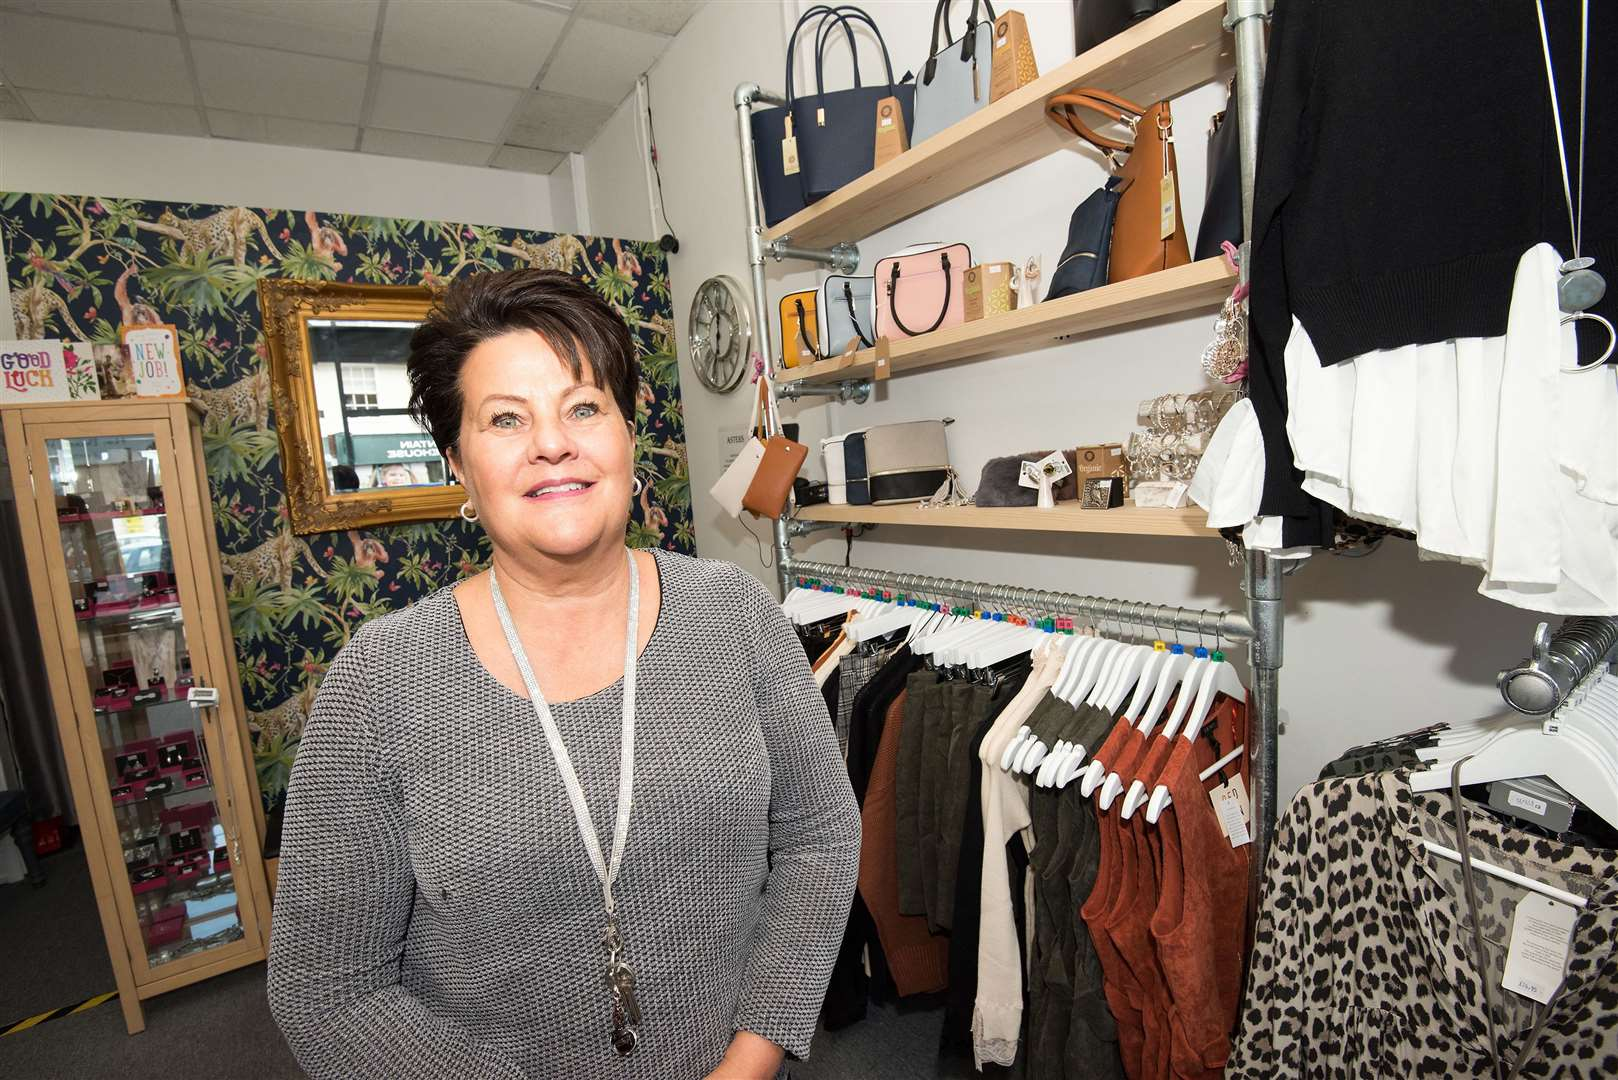 SUDBURY: New shop.Asters, Old Market Place, Sudbury, Suffolk .Asters, a new ladies' clothing and accessories shop, opened at the the site of the old Post Office building in Sudbury on Friday, September 27, 2019..store owner Bridget Baldwin at the shop. Picture Mark Westley. (18275405)